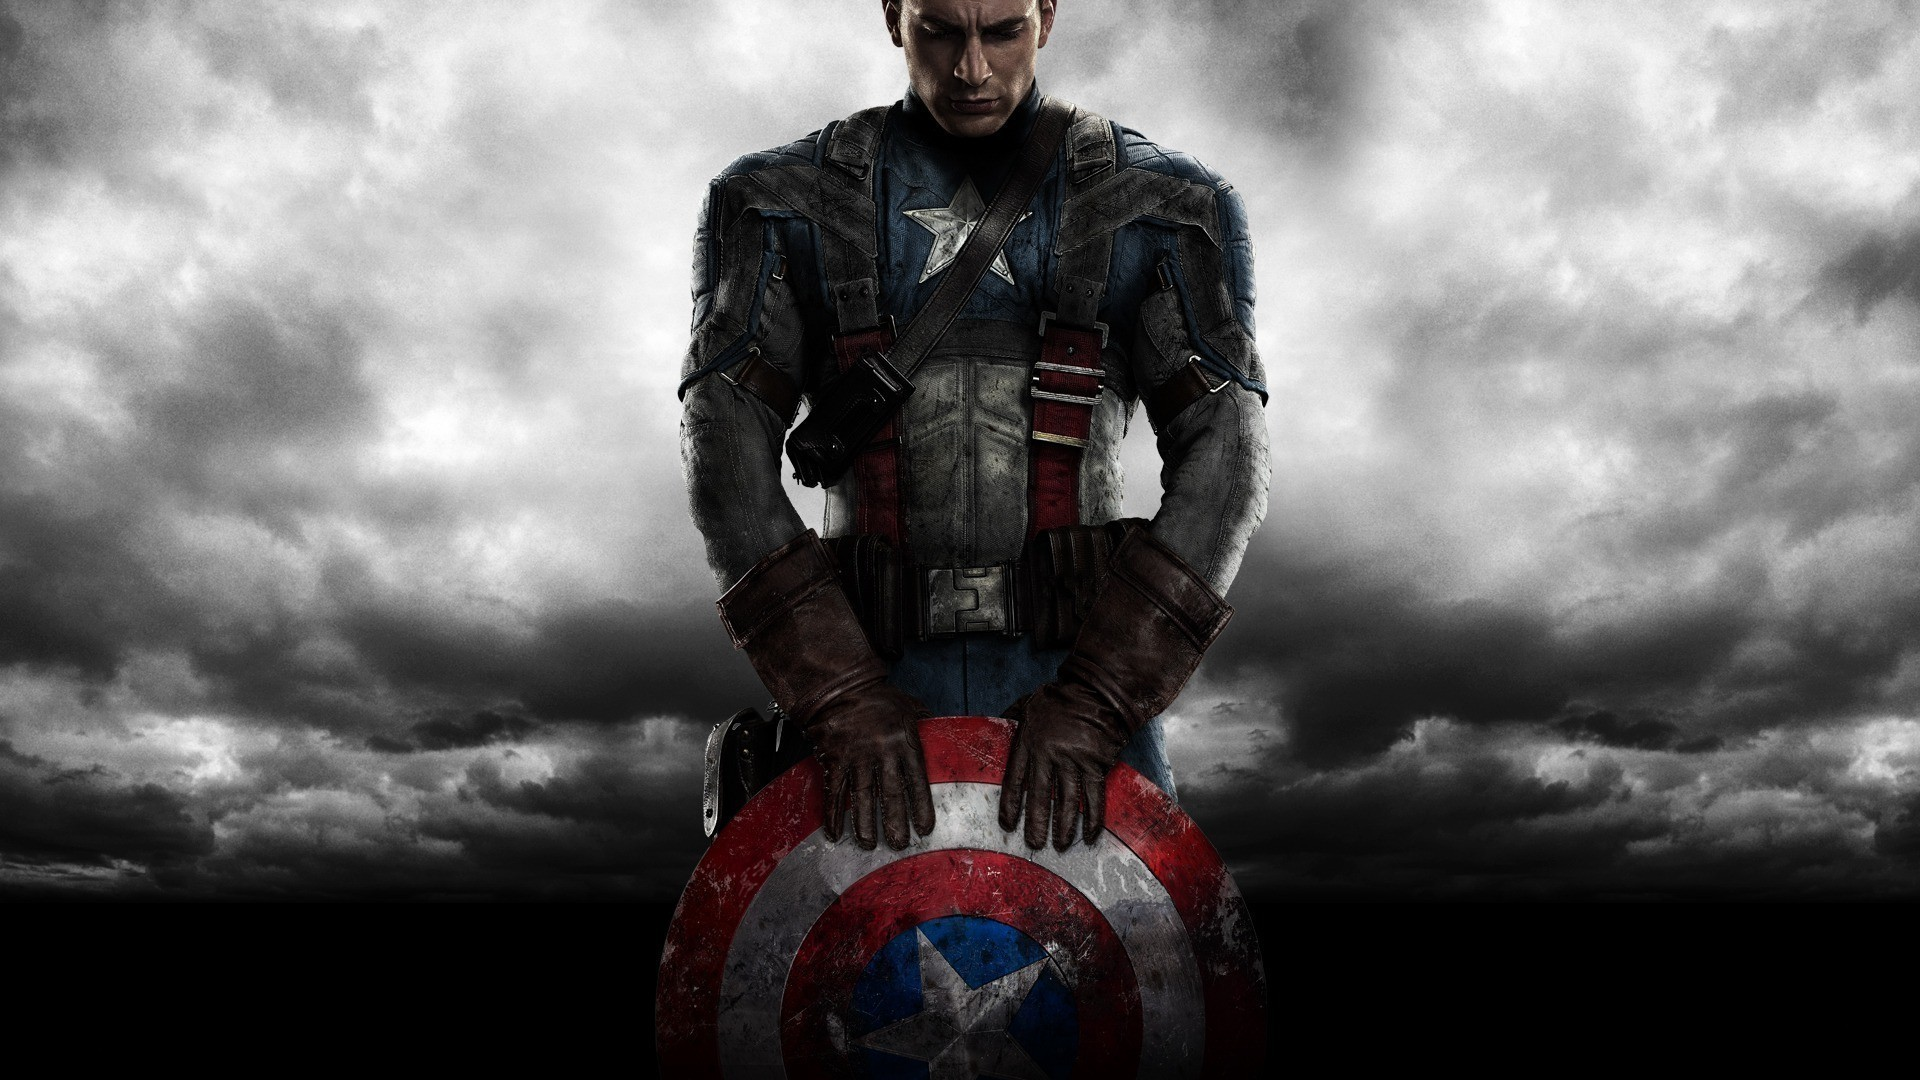 Free Download Captain America The Winter Soldier Wallpapers Hd